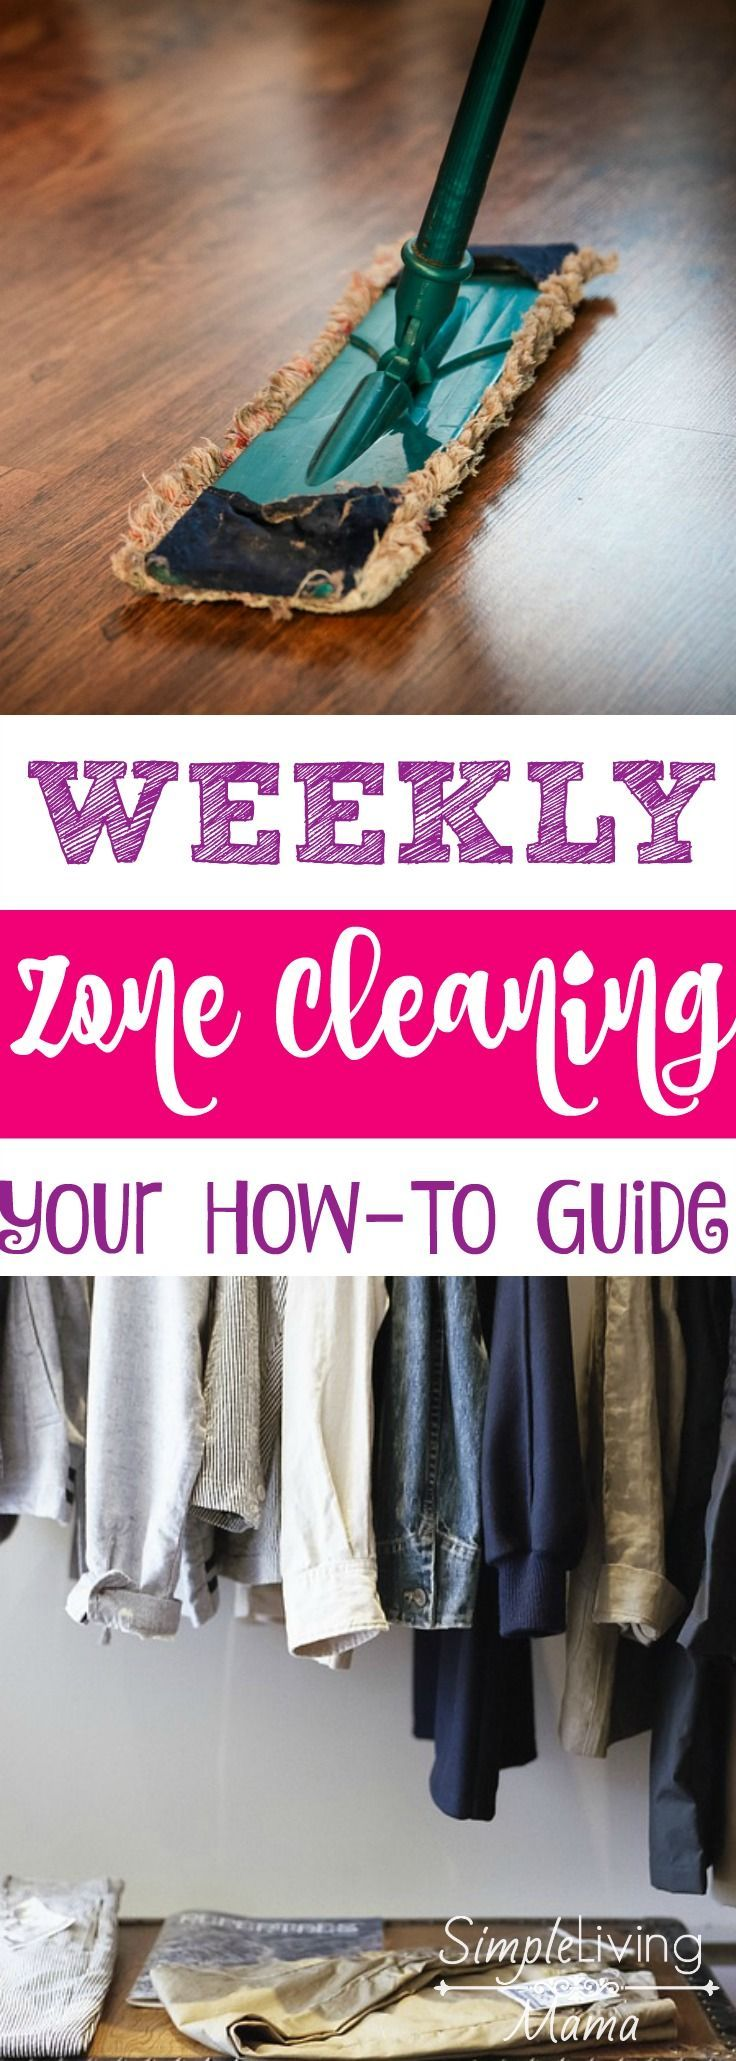 'How To Clean Your House with Weekly Zone Cleaning...!' (via Simple Living Mama)